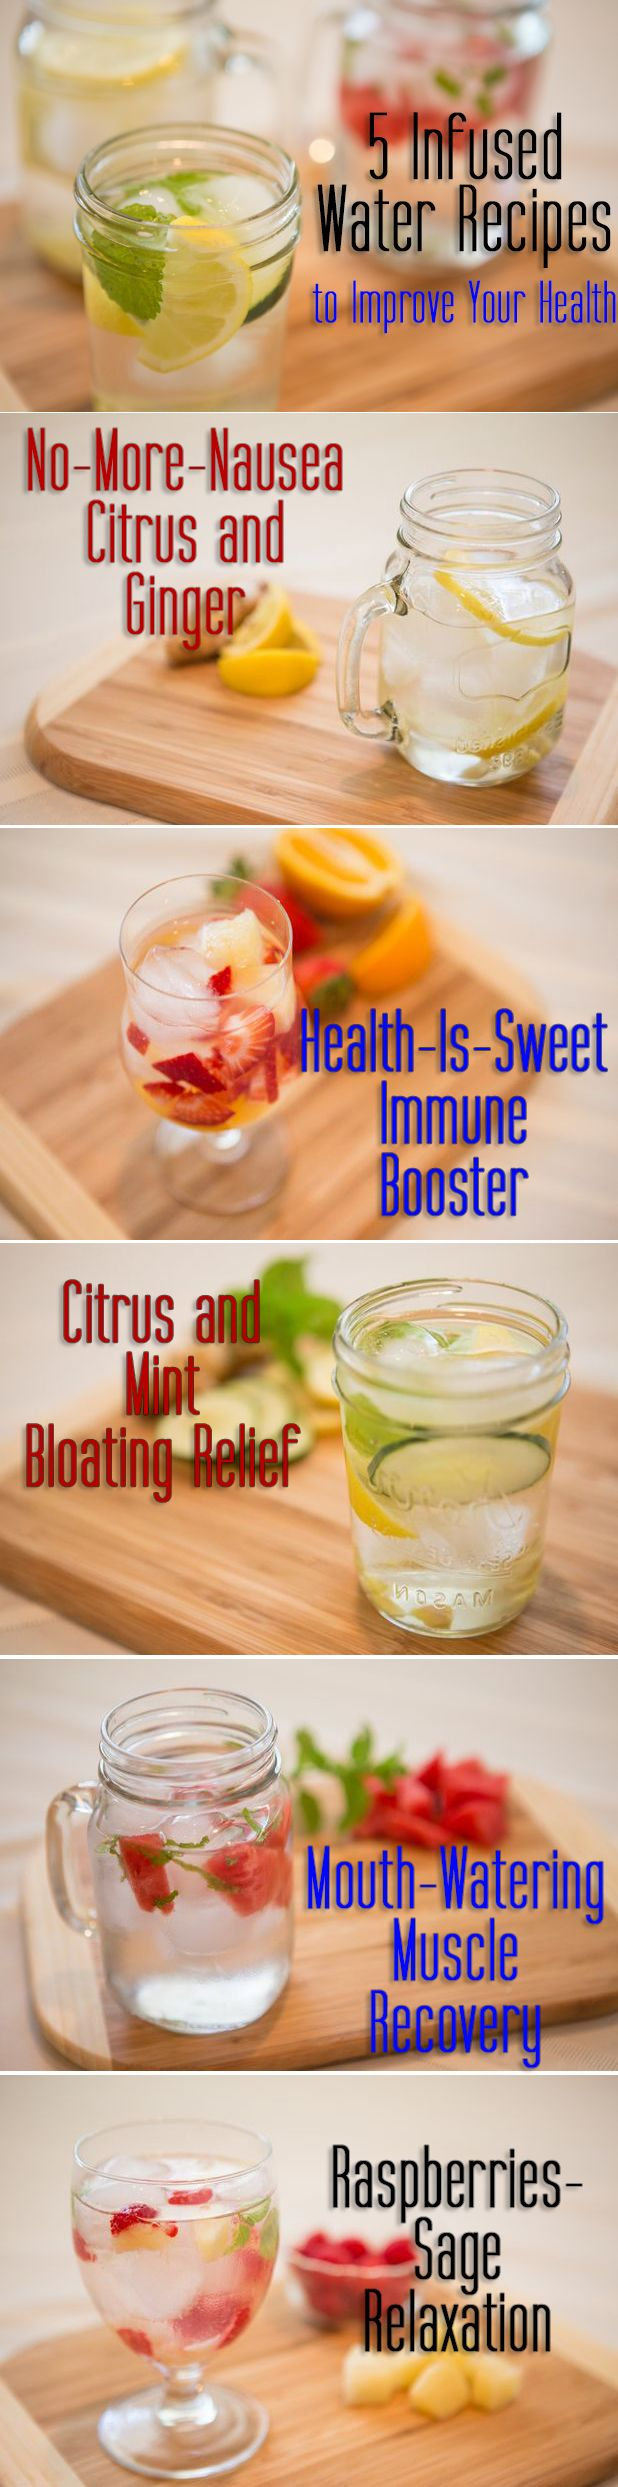 Drinking plenty of water is important to maintain optimal health, but infusing it with these ingredients can make water even more powerful! All natural and refreshing infused water recipes. No more added immune or energy boosts needed!